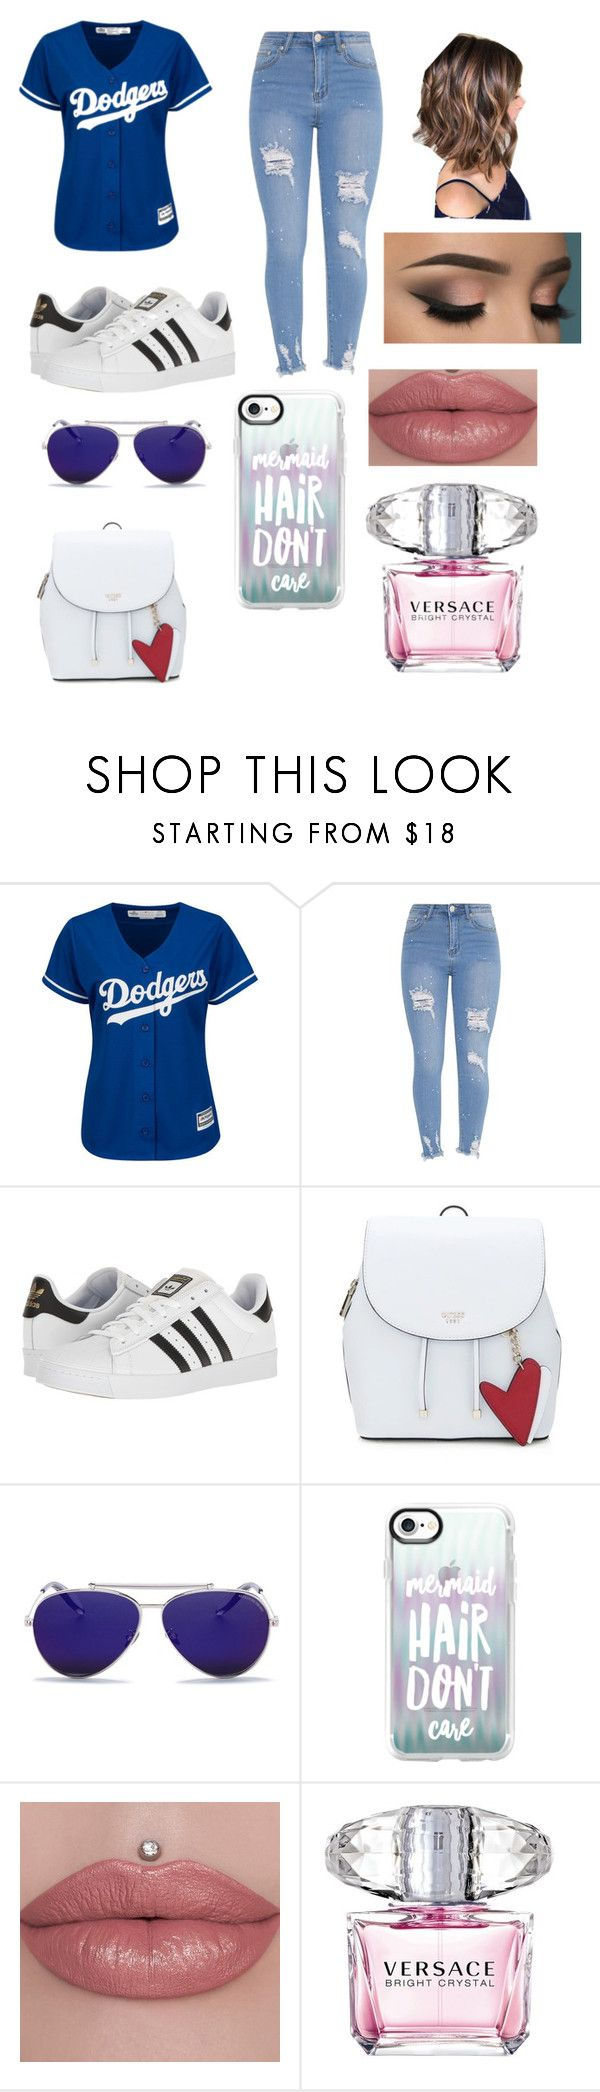 """⚾️ Dodger outfit"" by hailey-102706 ❤ liked on Polyvore featuring adidas, Alexander McQueen, Casetify and Versace"